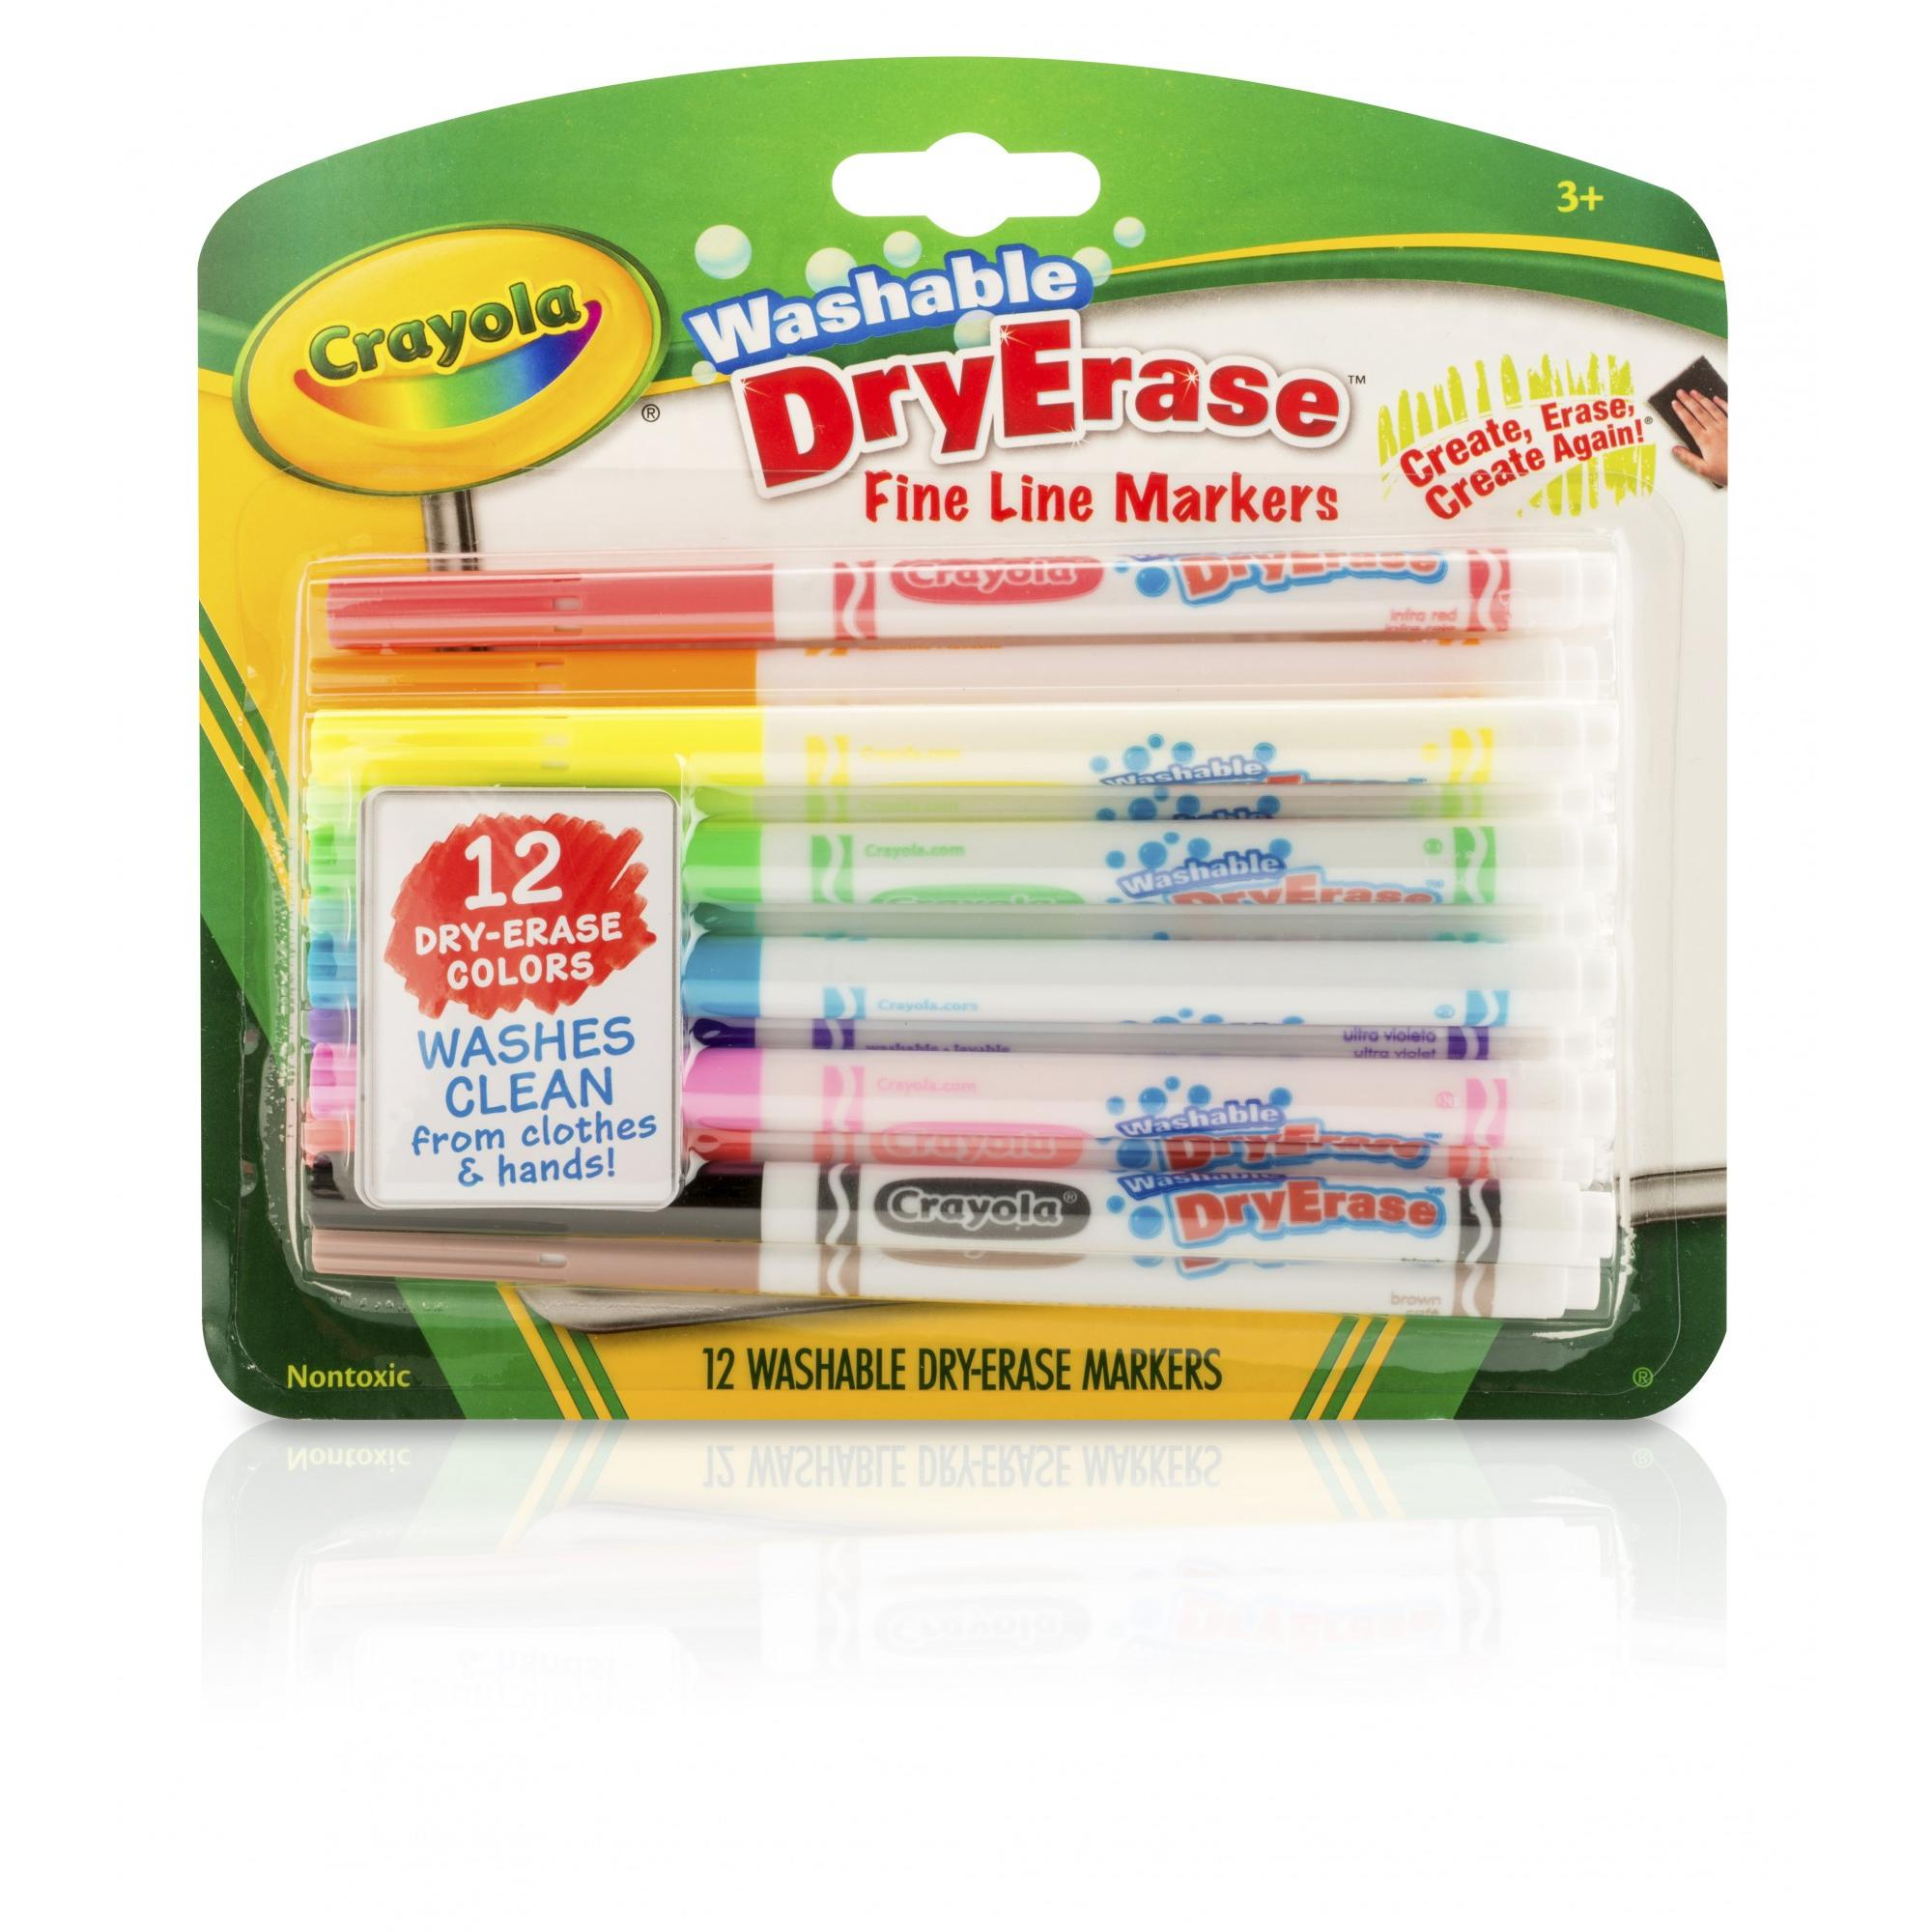 Crayola Washable Dry Erase Fineline Markers, 12 Count